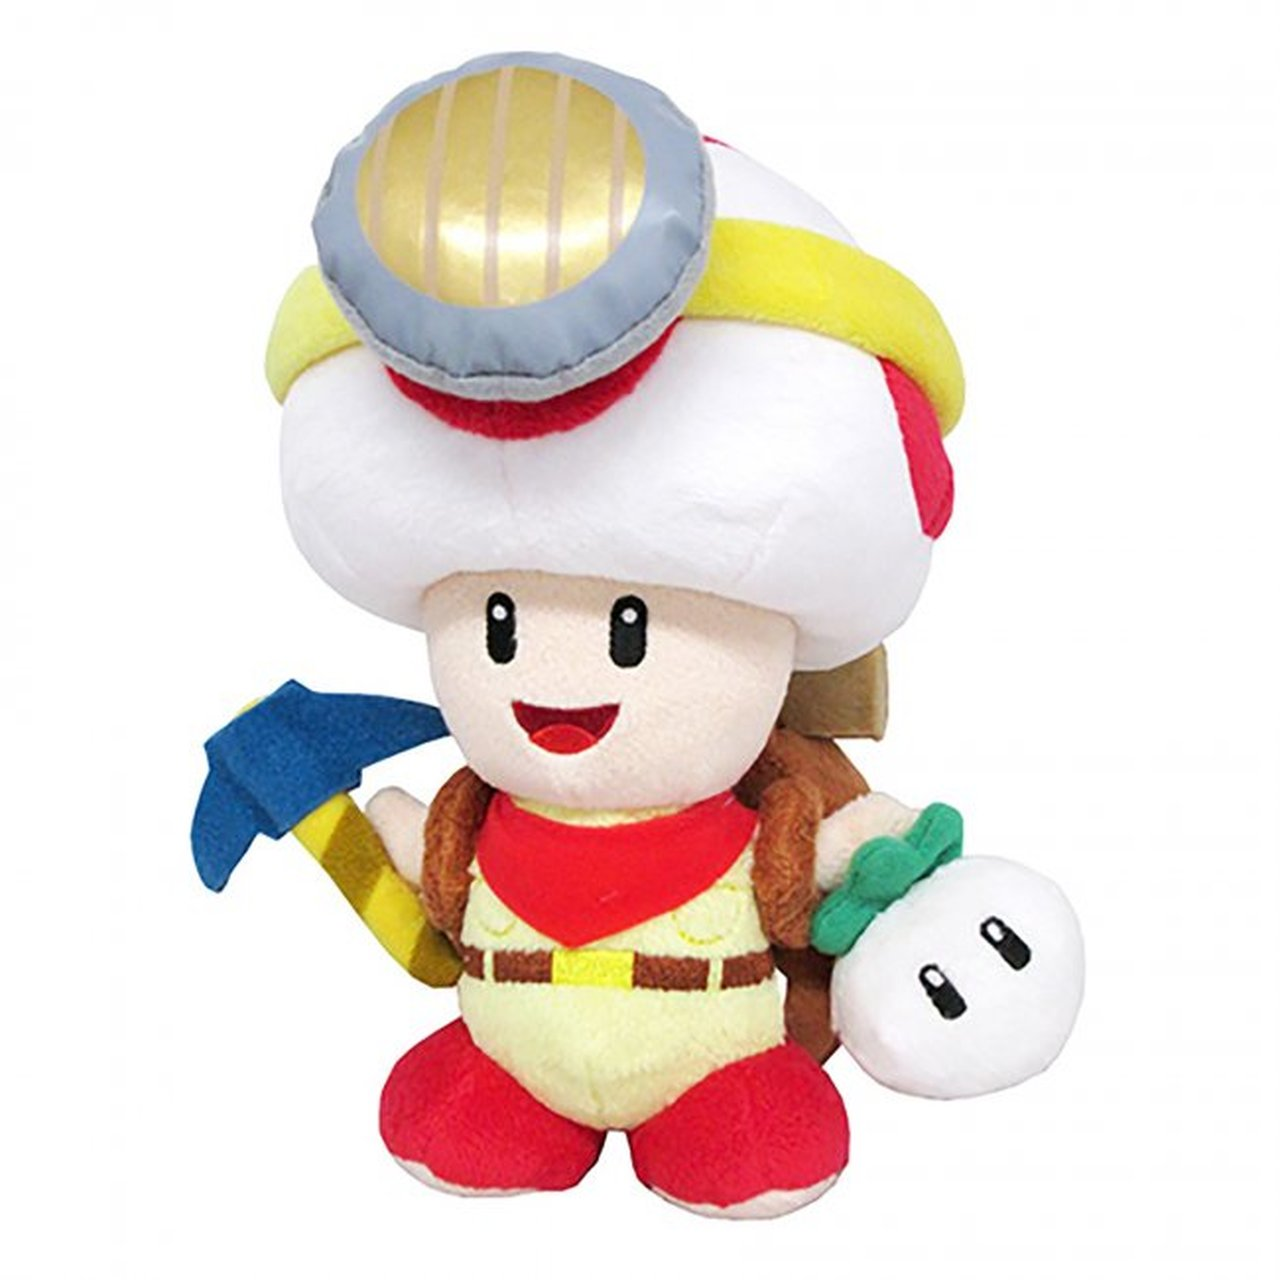 captain-toad-standing-all-star-collection-plush (1)